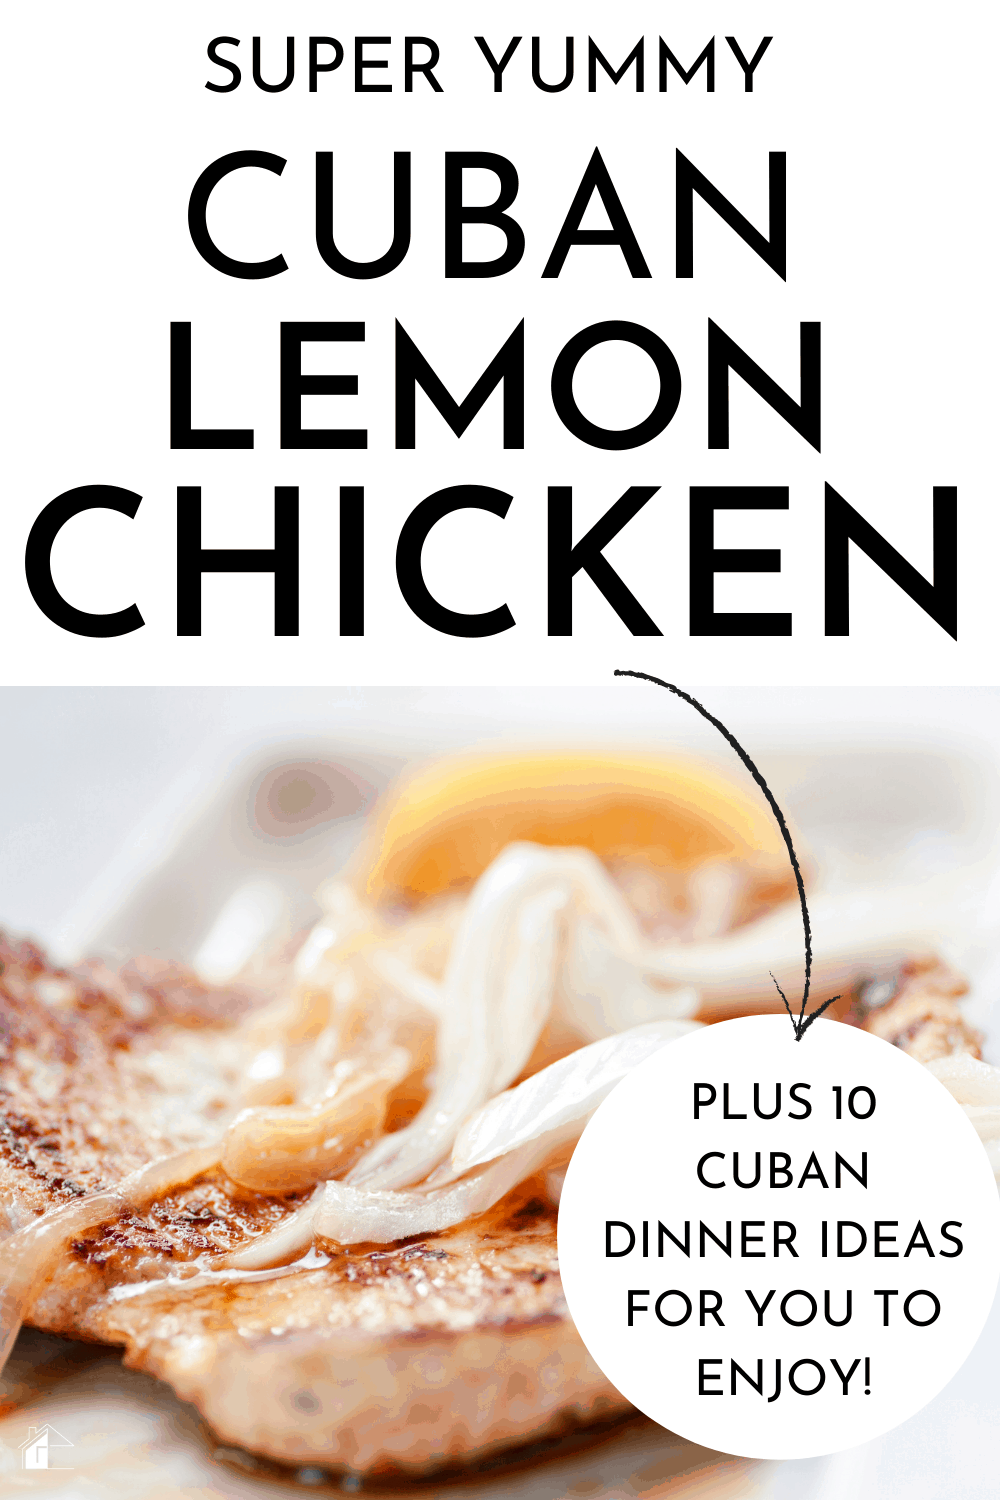 The best part of any culture is the food. So spice up your dinner with these ten unique and tasty Cuban dinner ideas! via @mystayathome